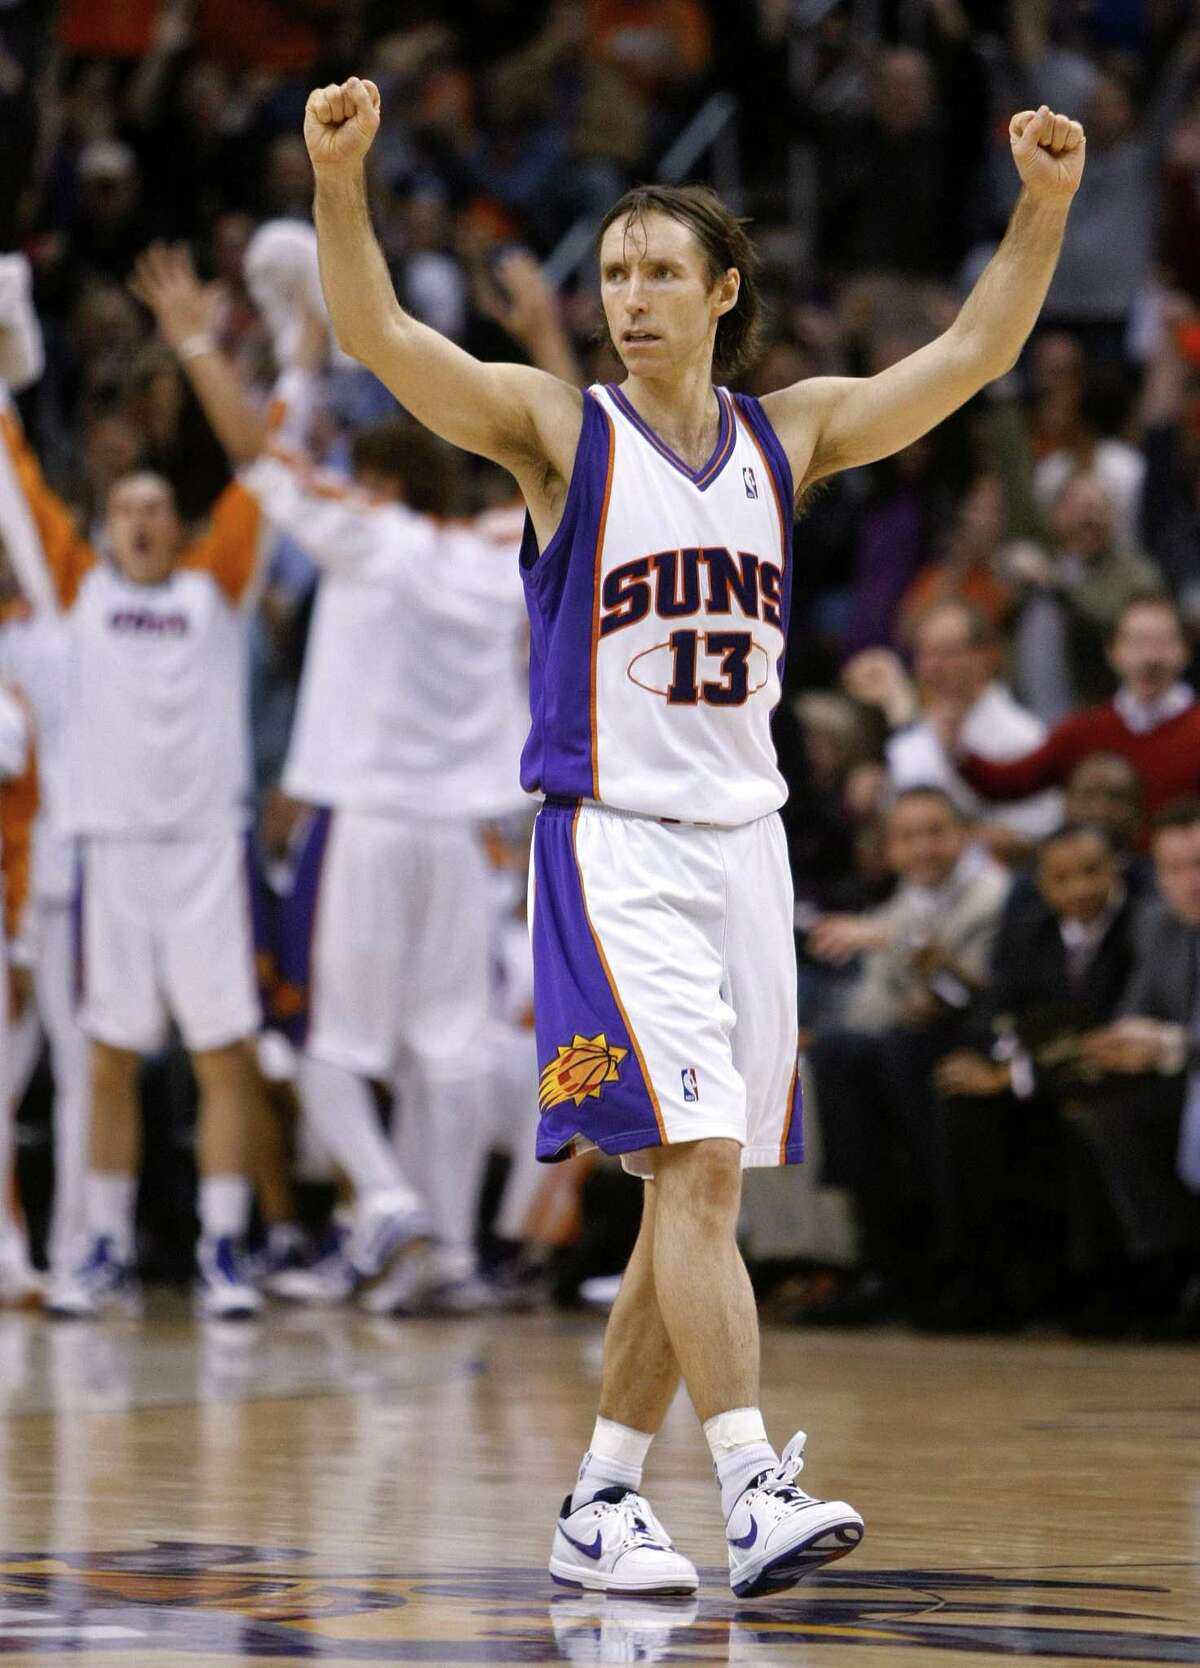 Phoenix Suns' Steve Nash cheers during the second half of the Suns' 118-103 win over the Los Angeles Lakers in an NBA basketball game Monday, Dec. 28, 2009, in Phoenix. (AP Photo/Matt York)